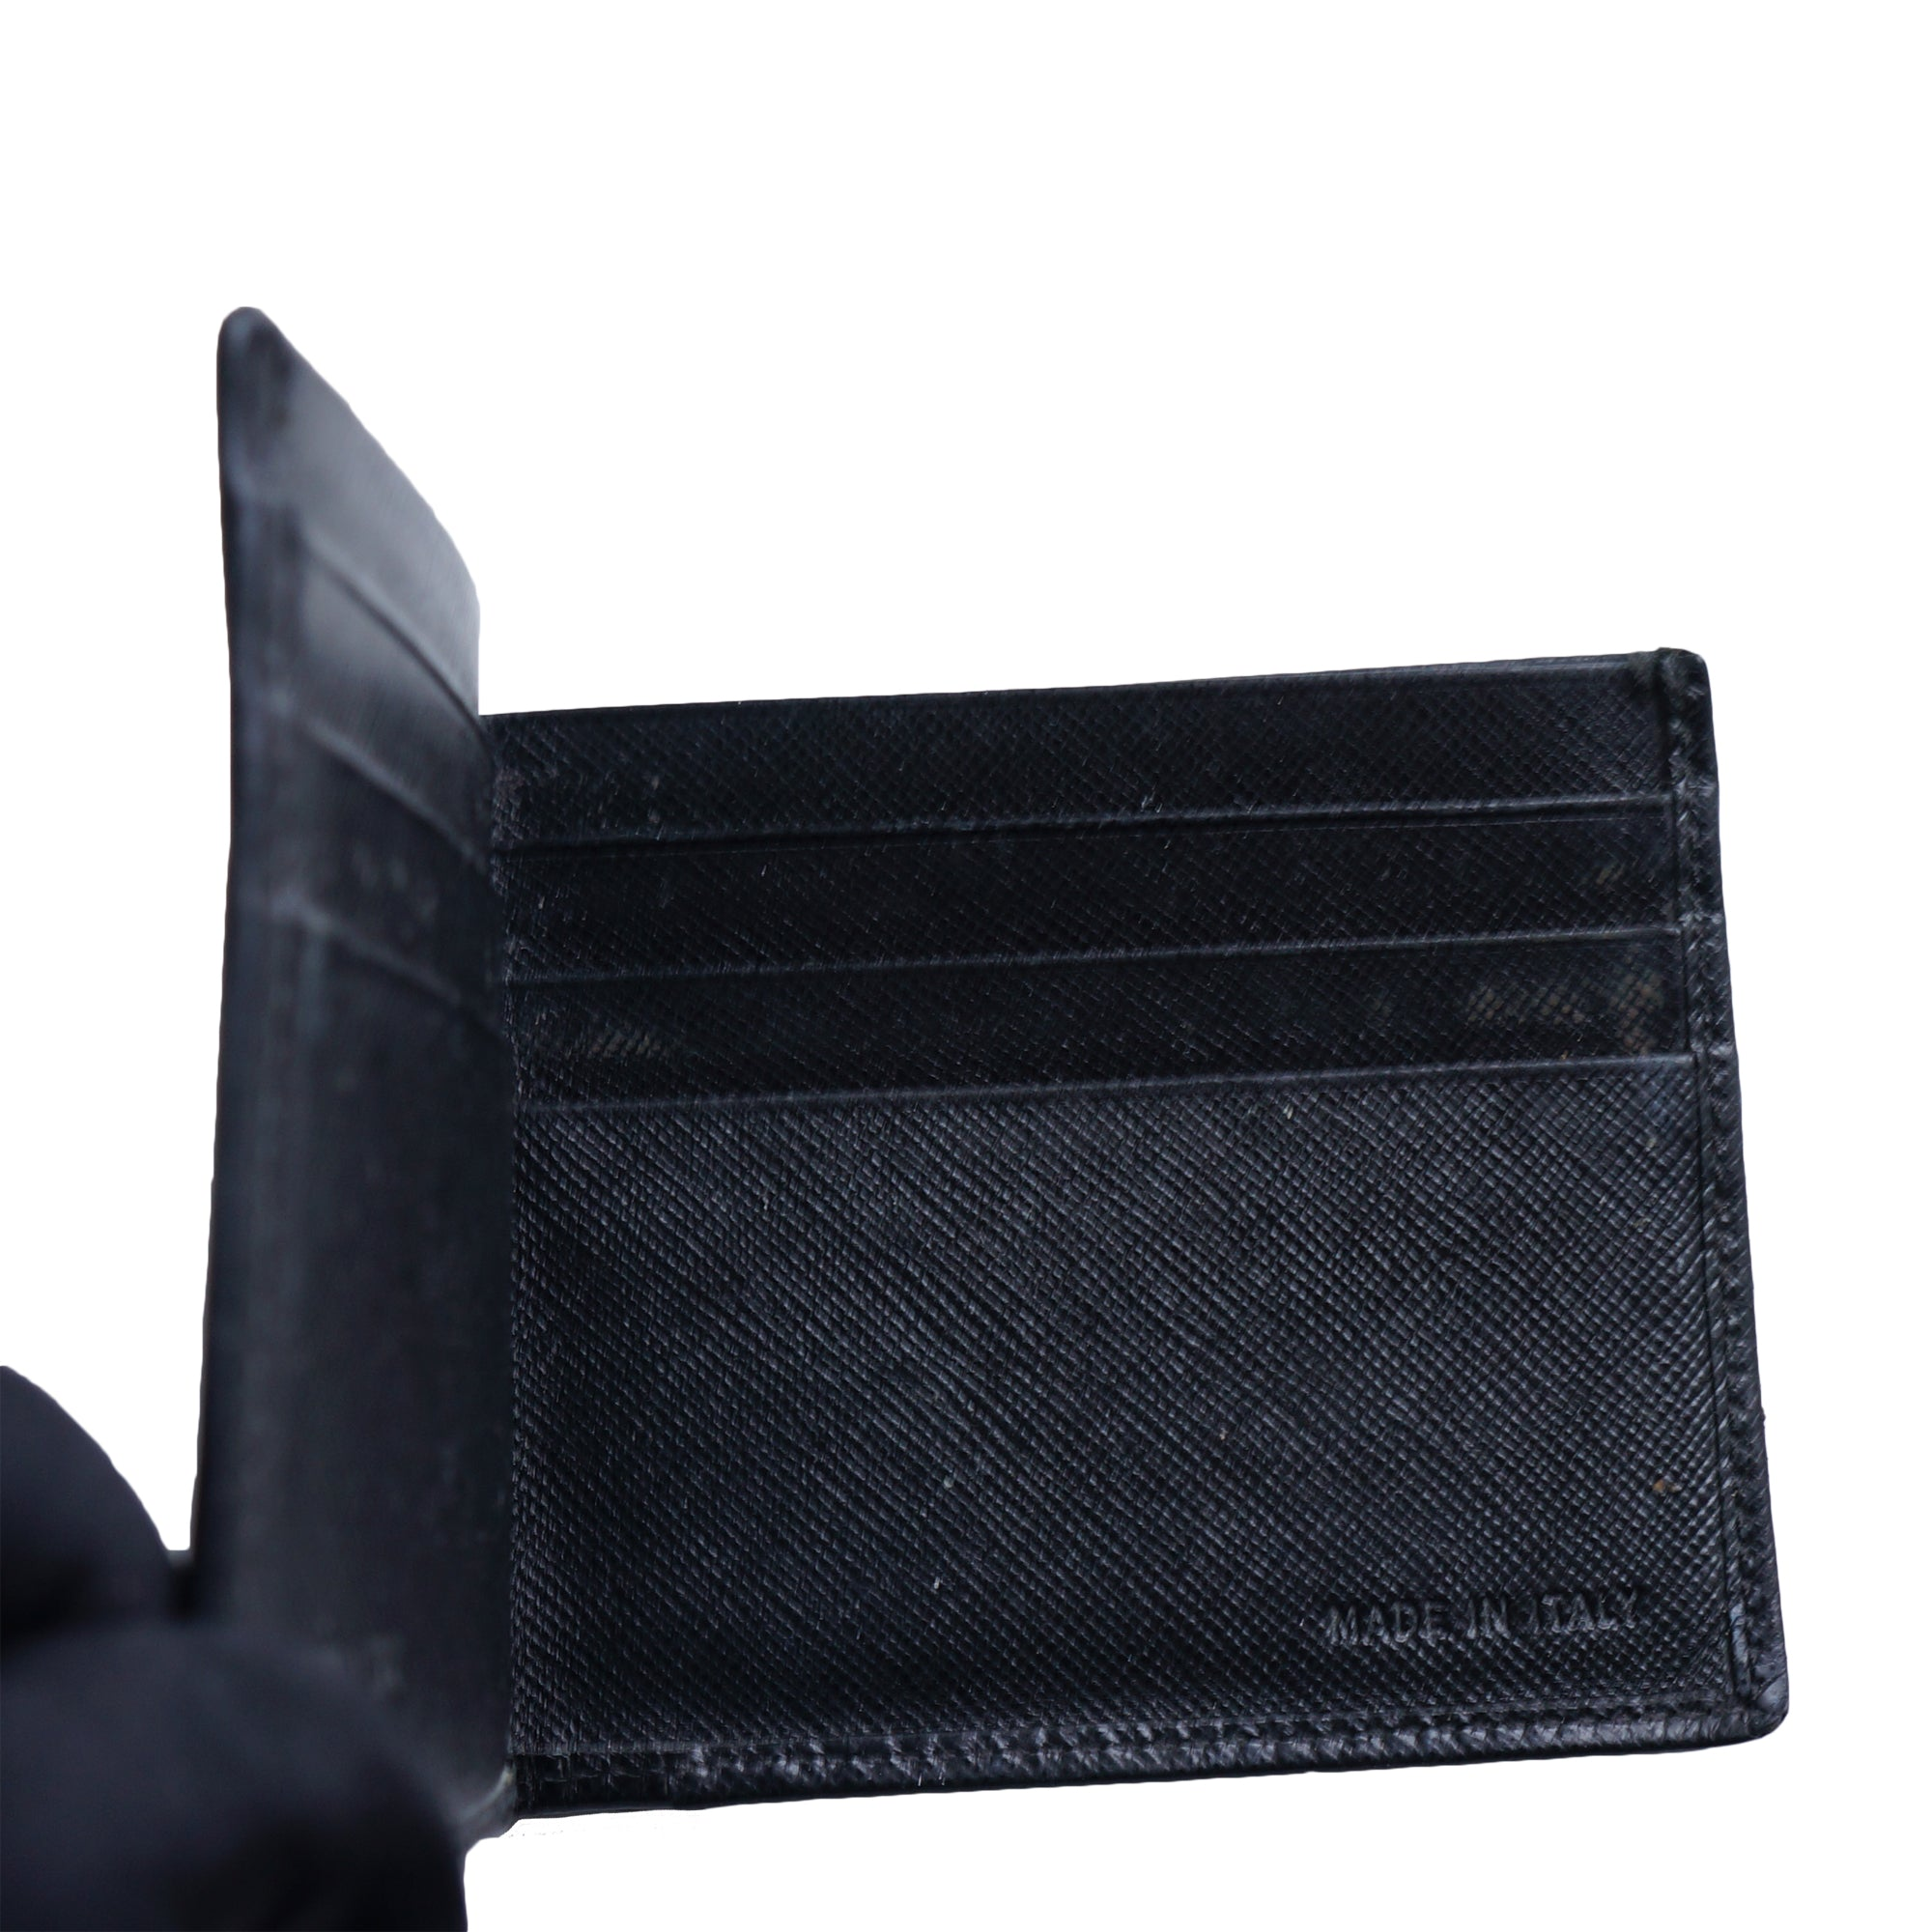 2bb017d91efd ... promo code for prada saffiano bifold leather wallet f9c49 1a321